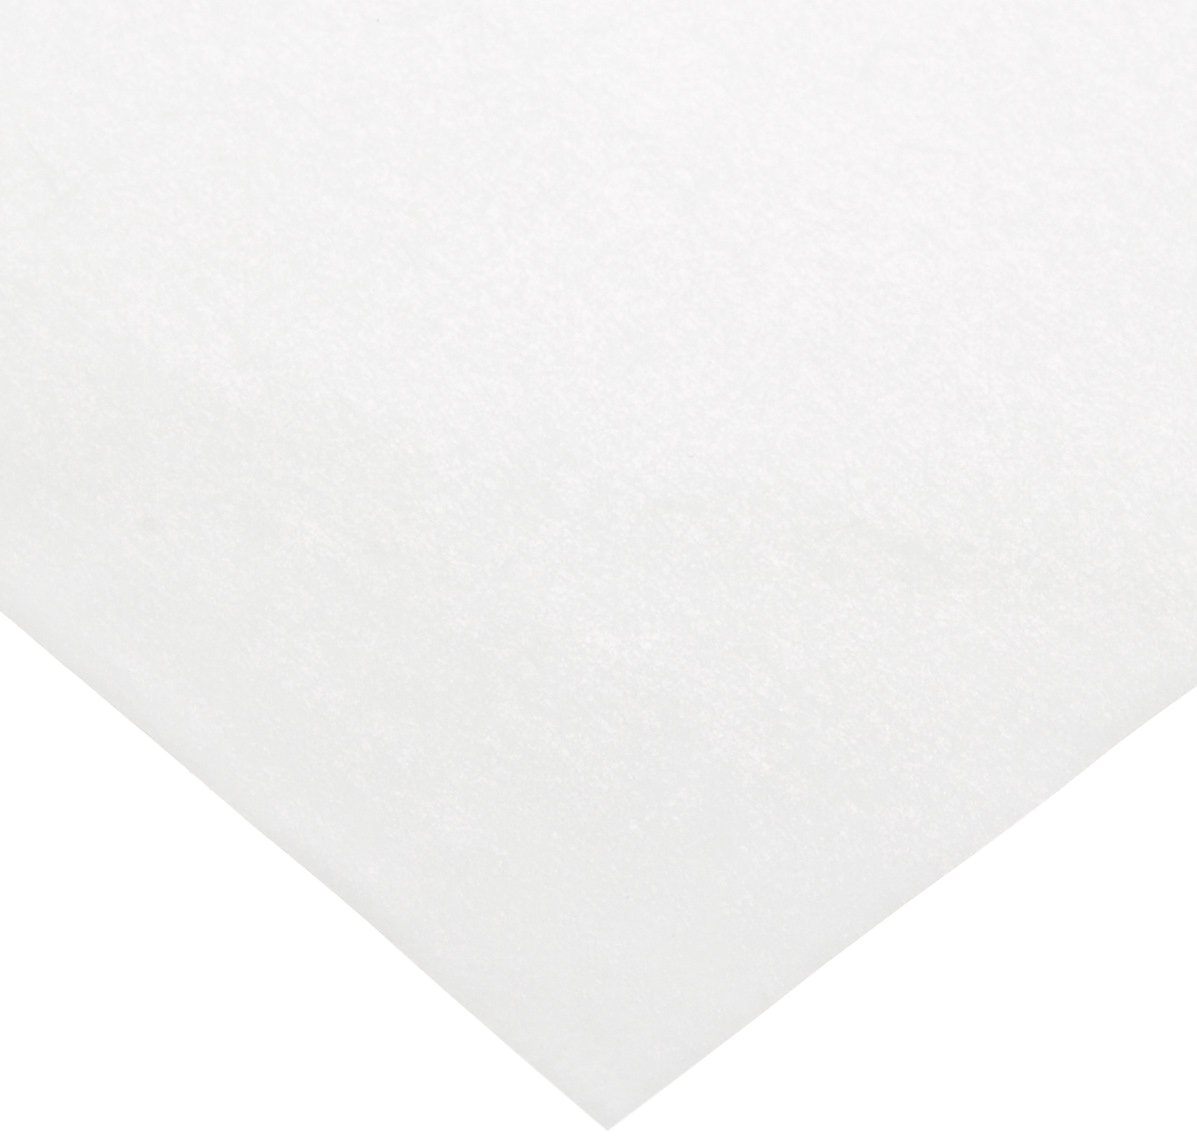 Sax 18 pound Sketch and Trace Paper - 12 x 18 inches - Pack of 500 - White